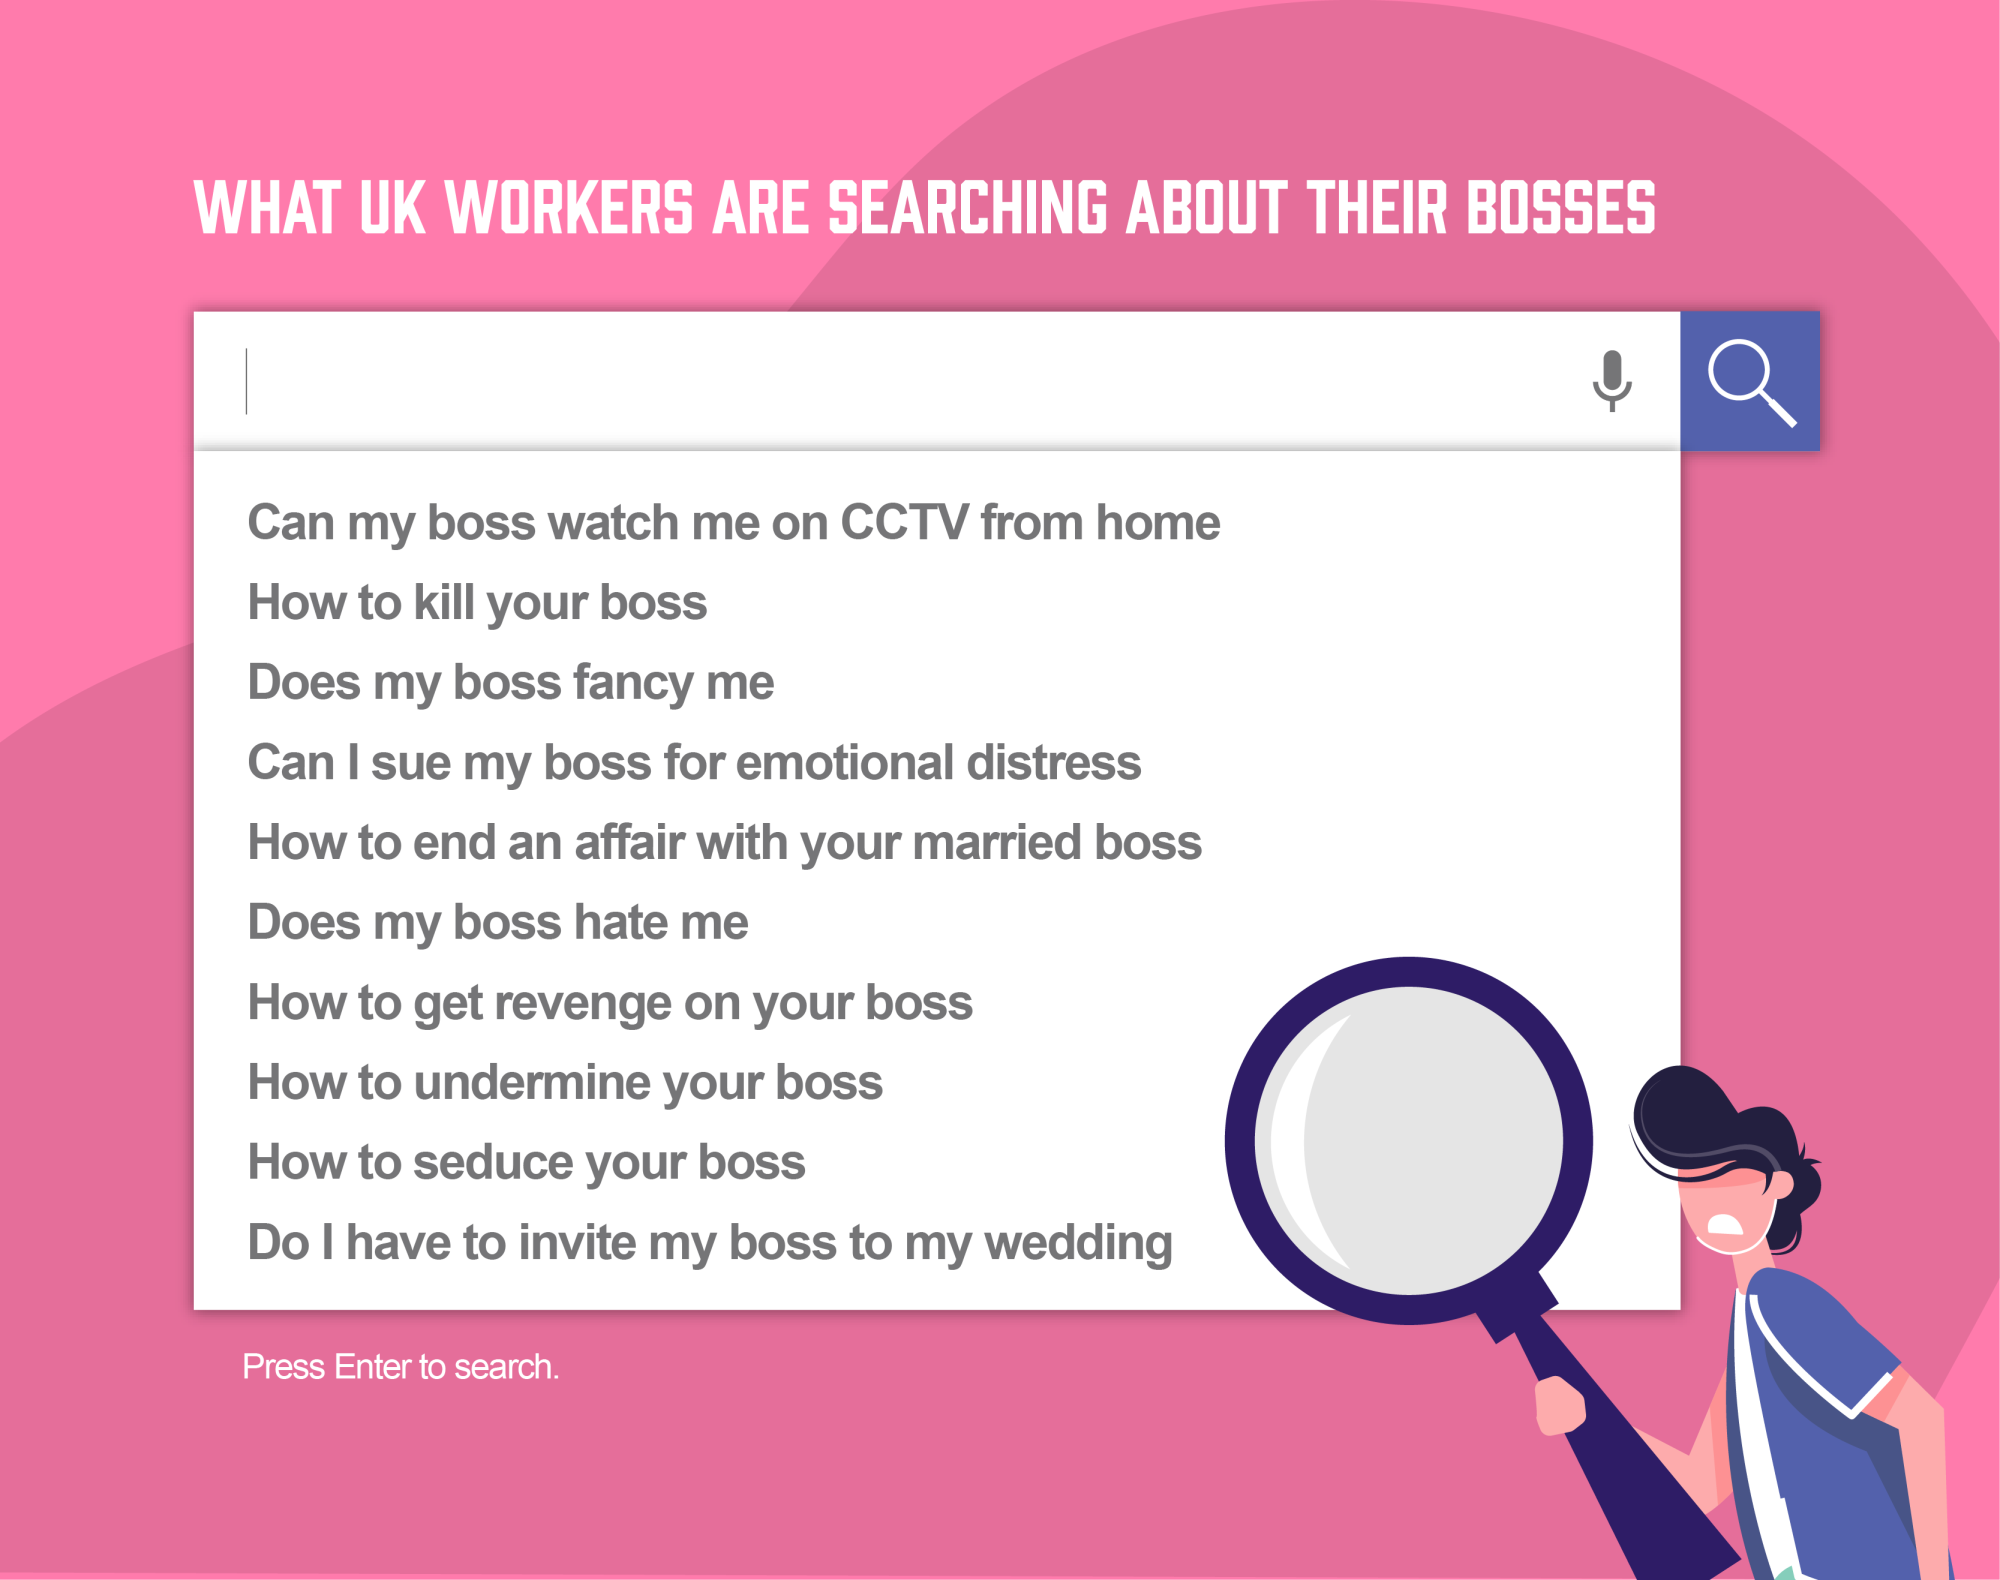 Viking Direct has come up with the most searched for (on Google) workplace relationship terms